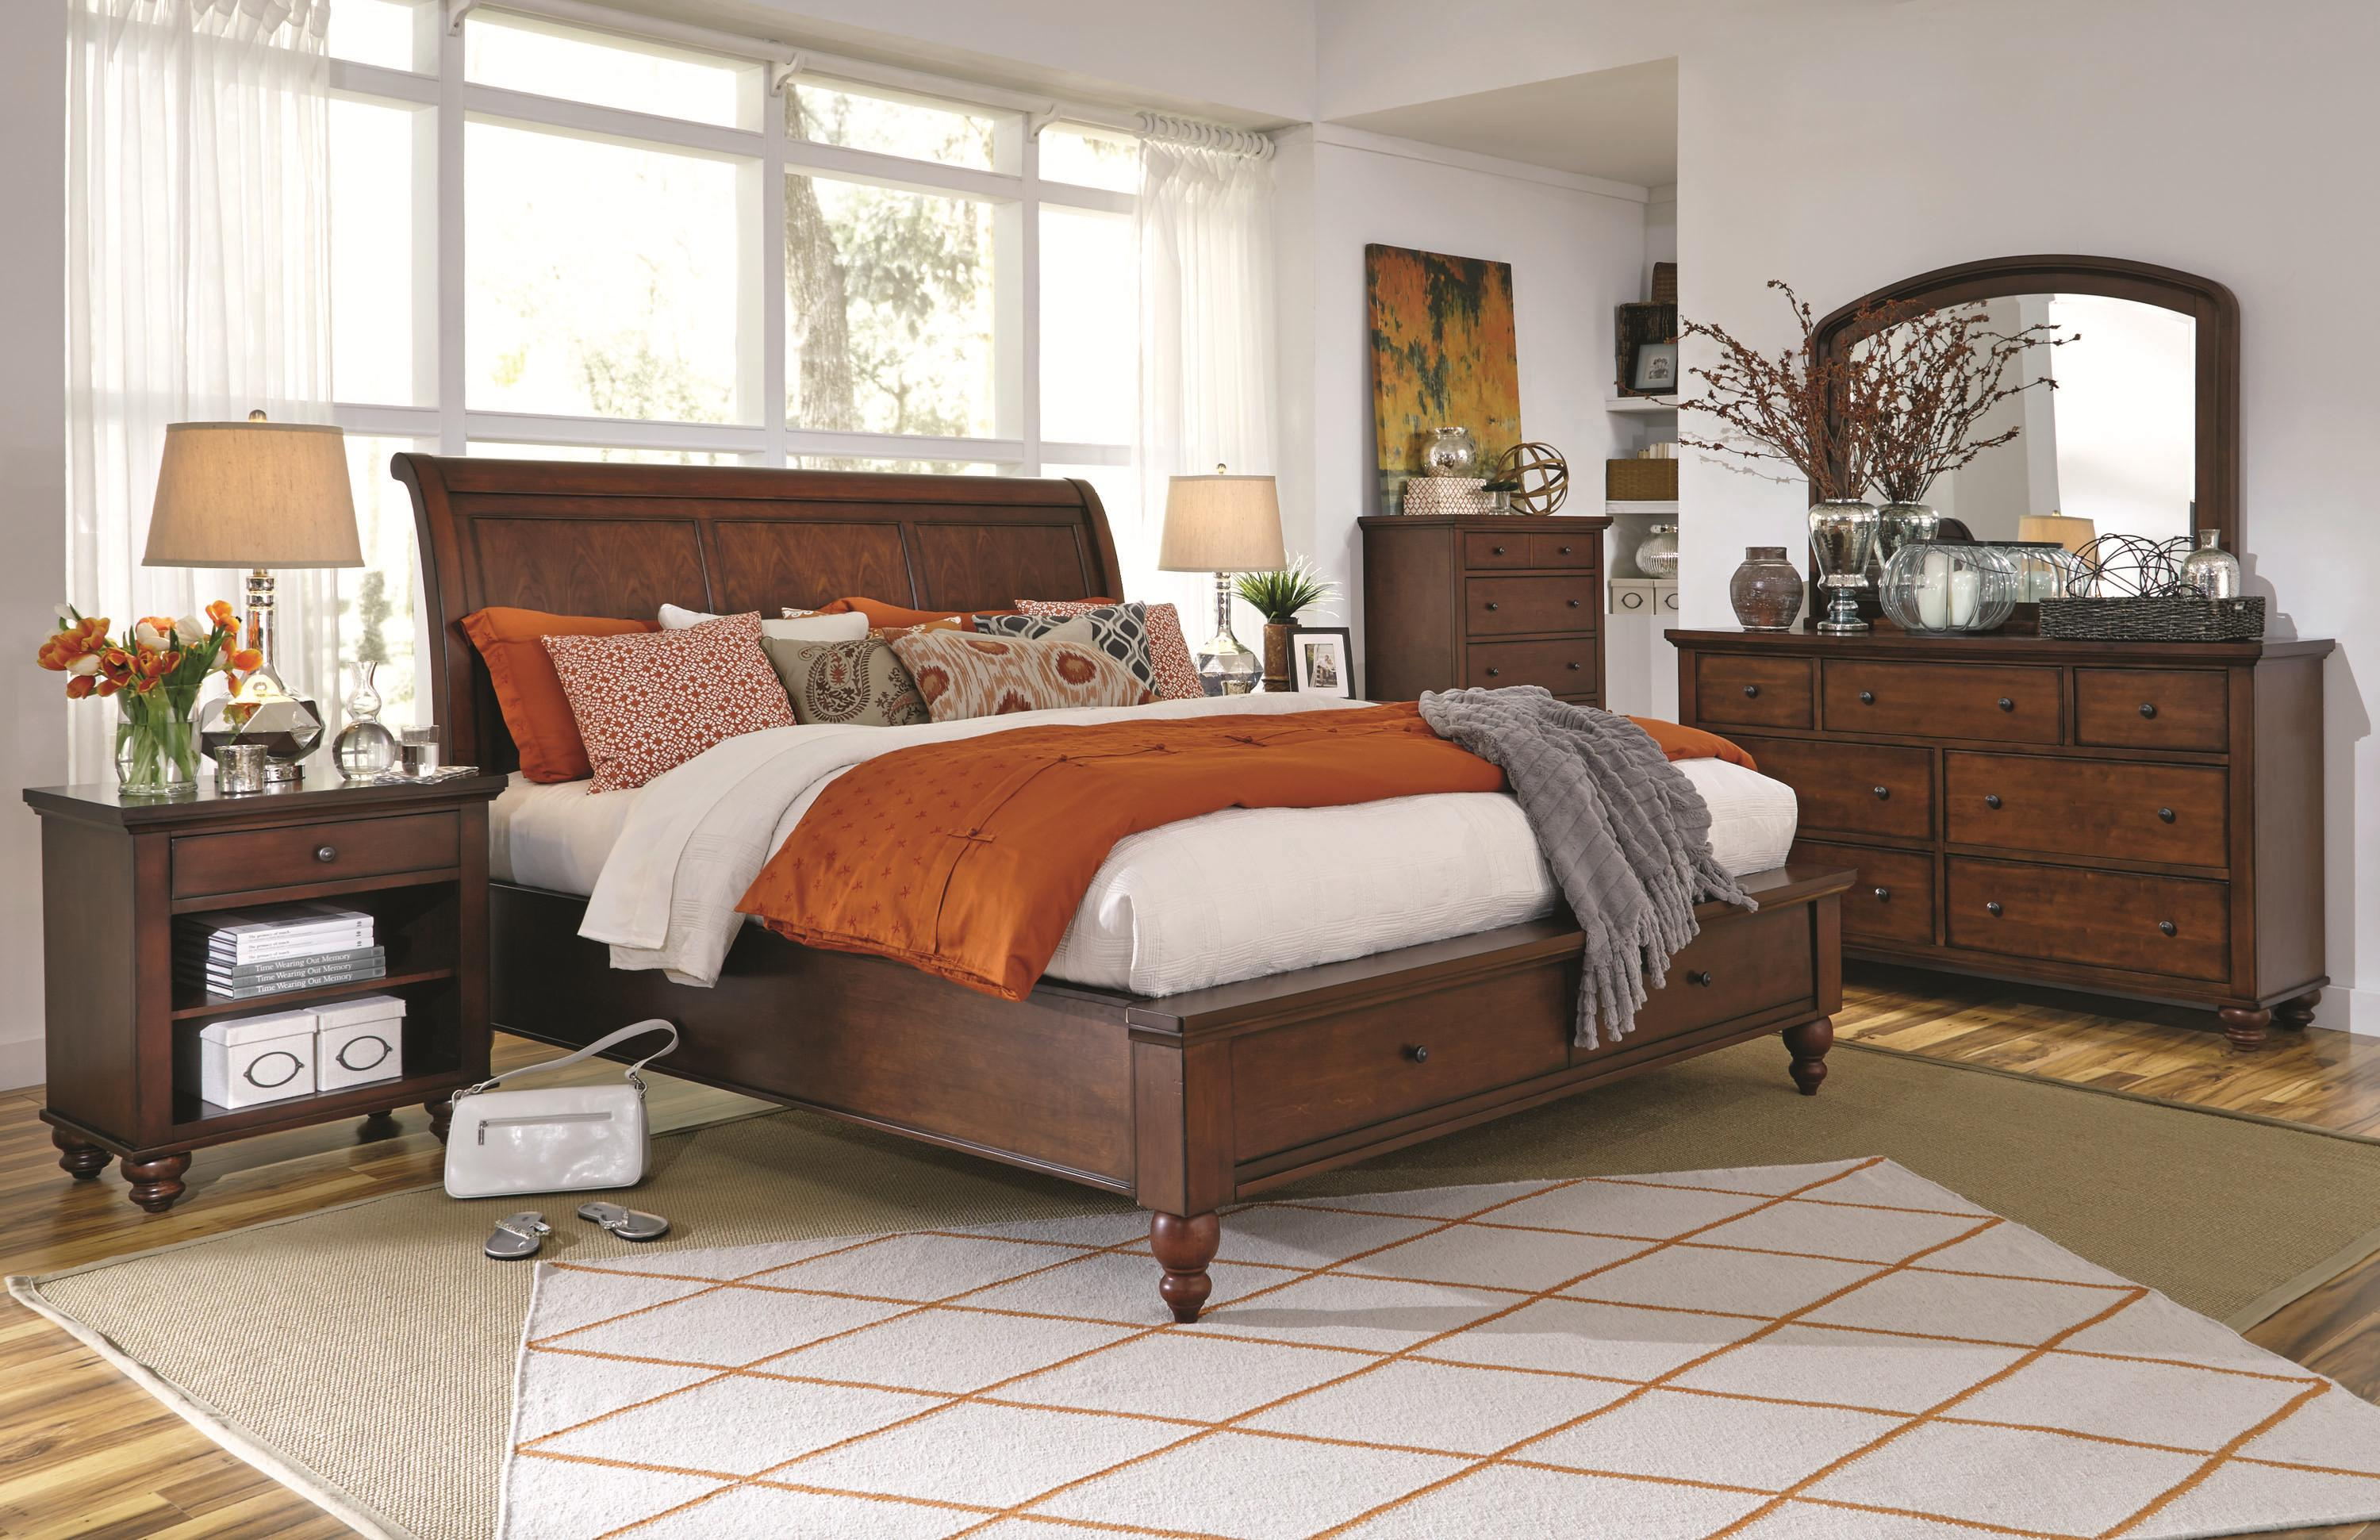 King Size Bed With Sleigh Headboard Drawer Storage Footboard By Aspenhome Wolf And Gardiner